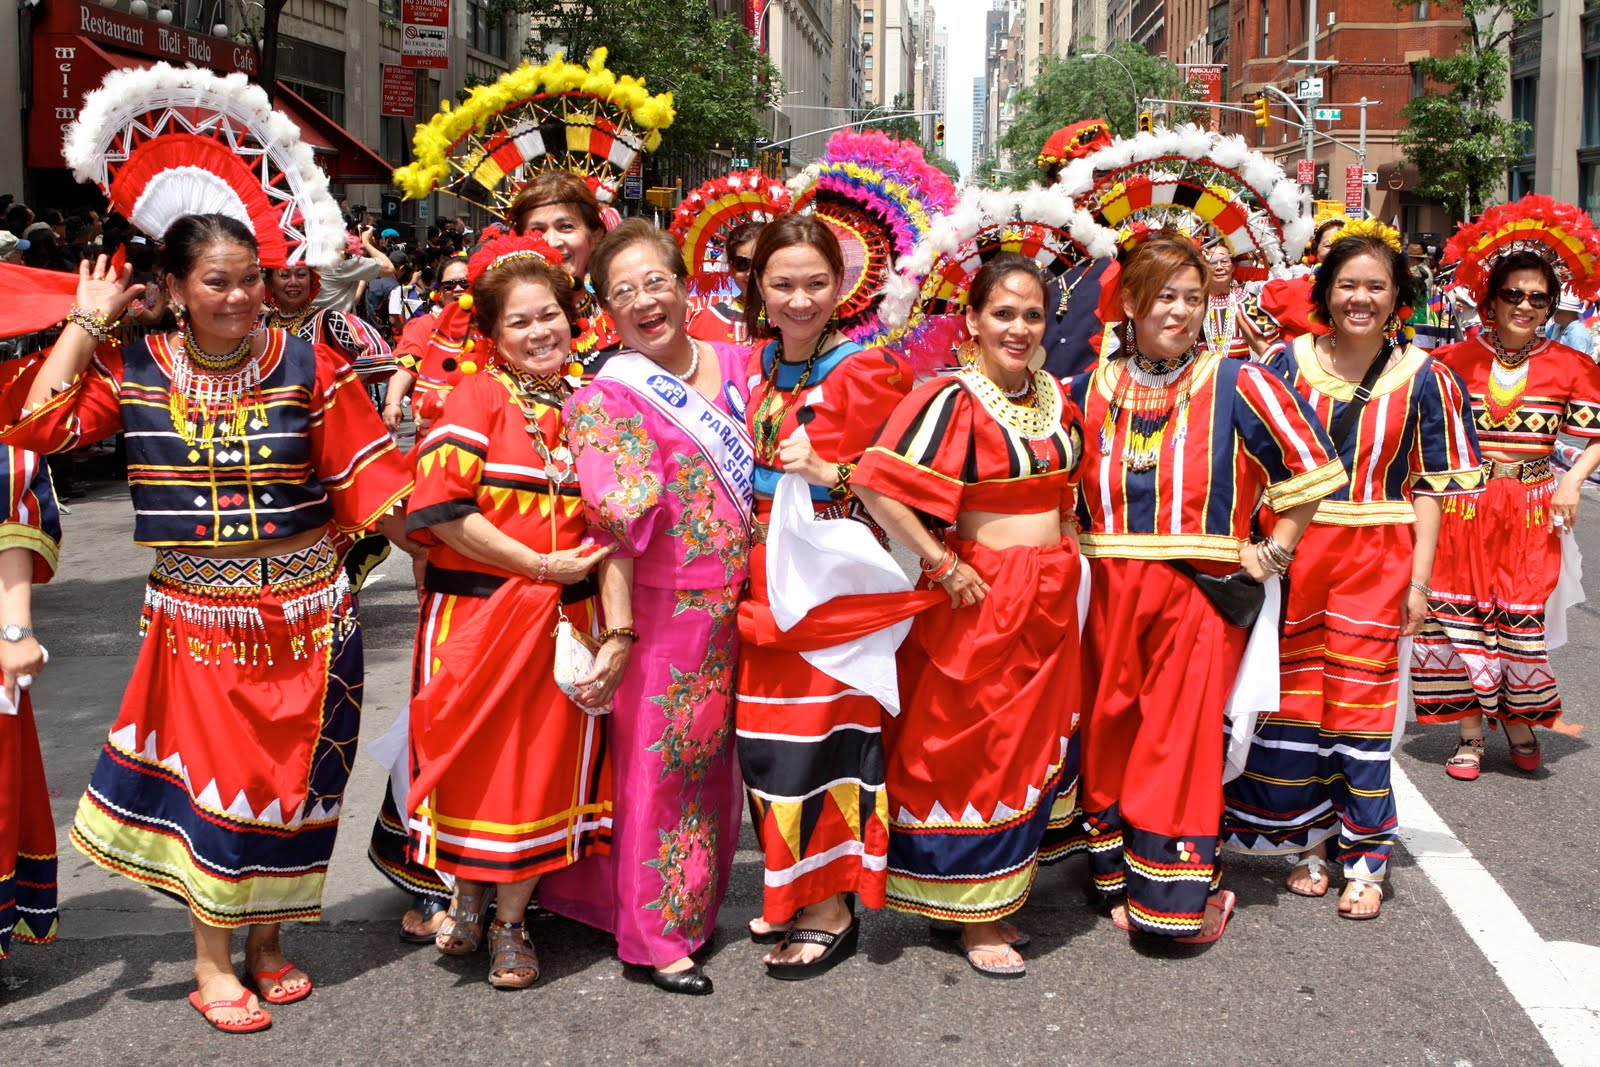 filipino culture Culture of the philippines - history, people, clothing, traditions, women, beliefs, food, customs, family no-sa.